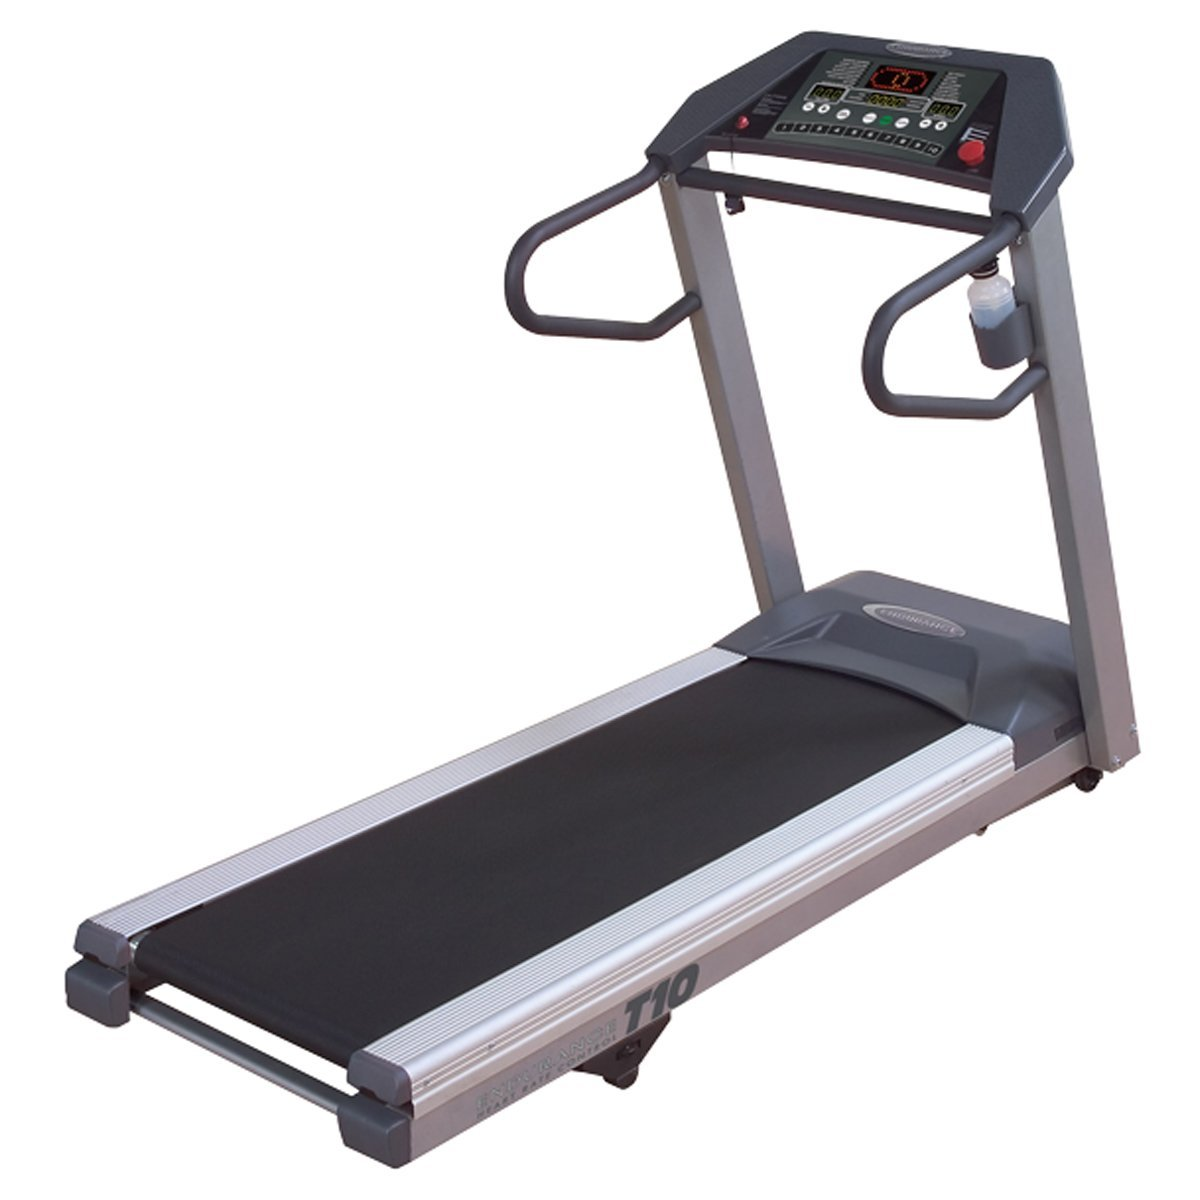 Body Solid Endurance T10 Treadmill